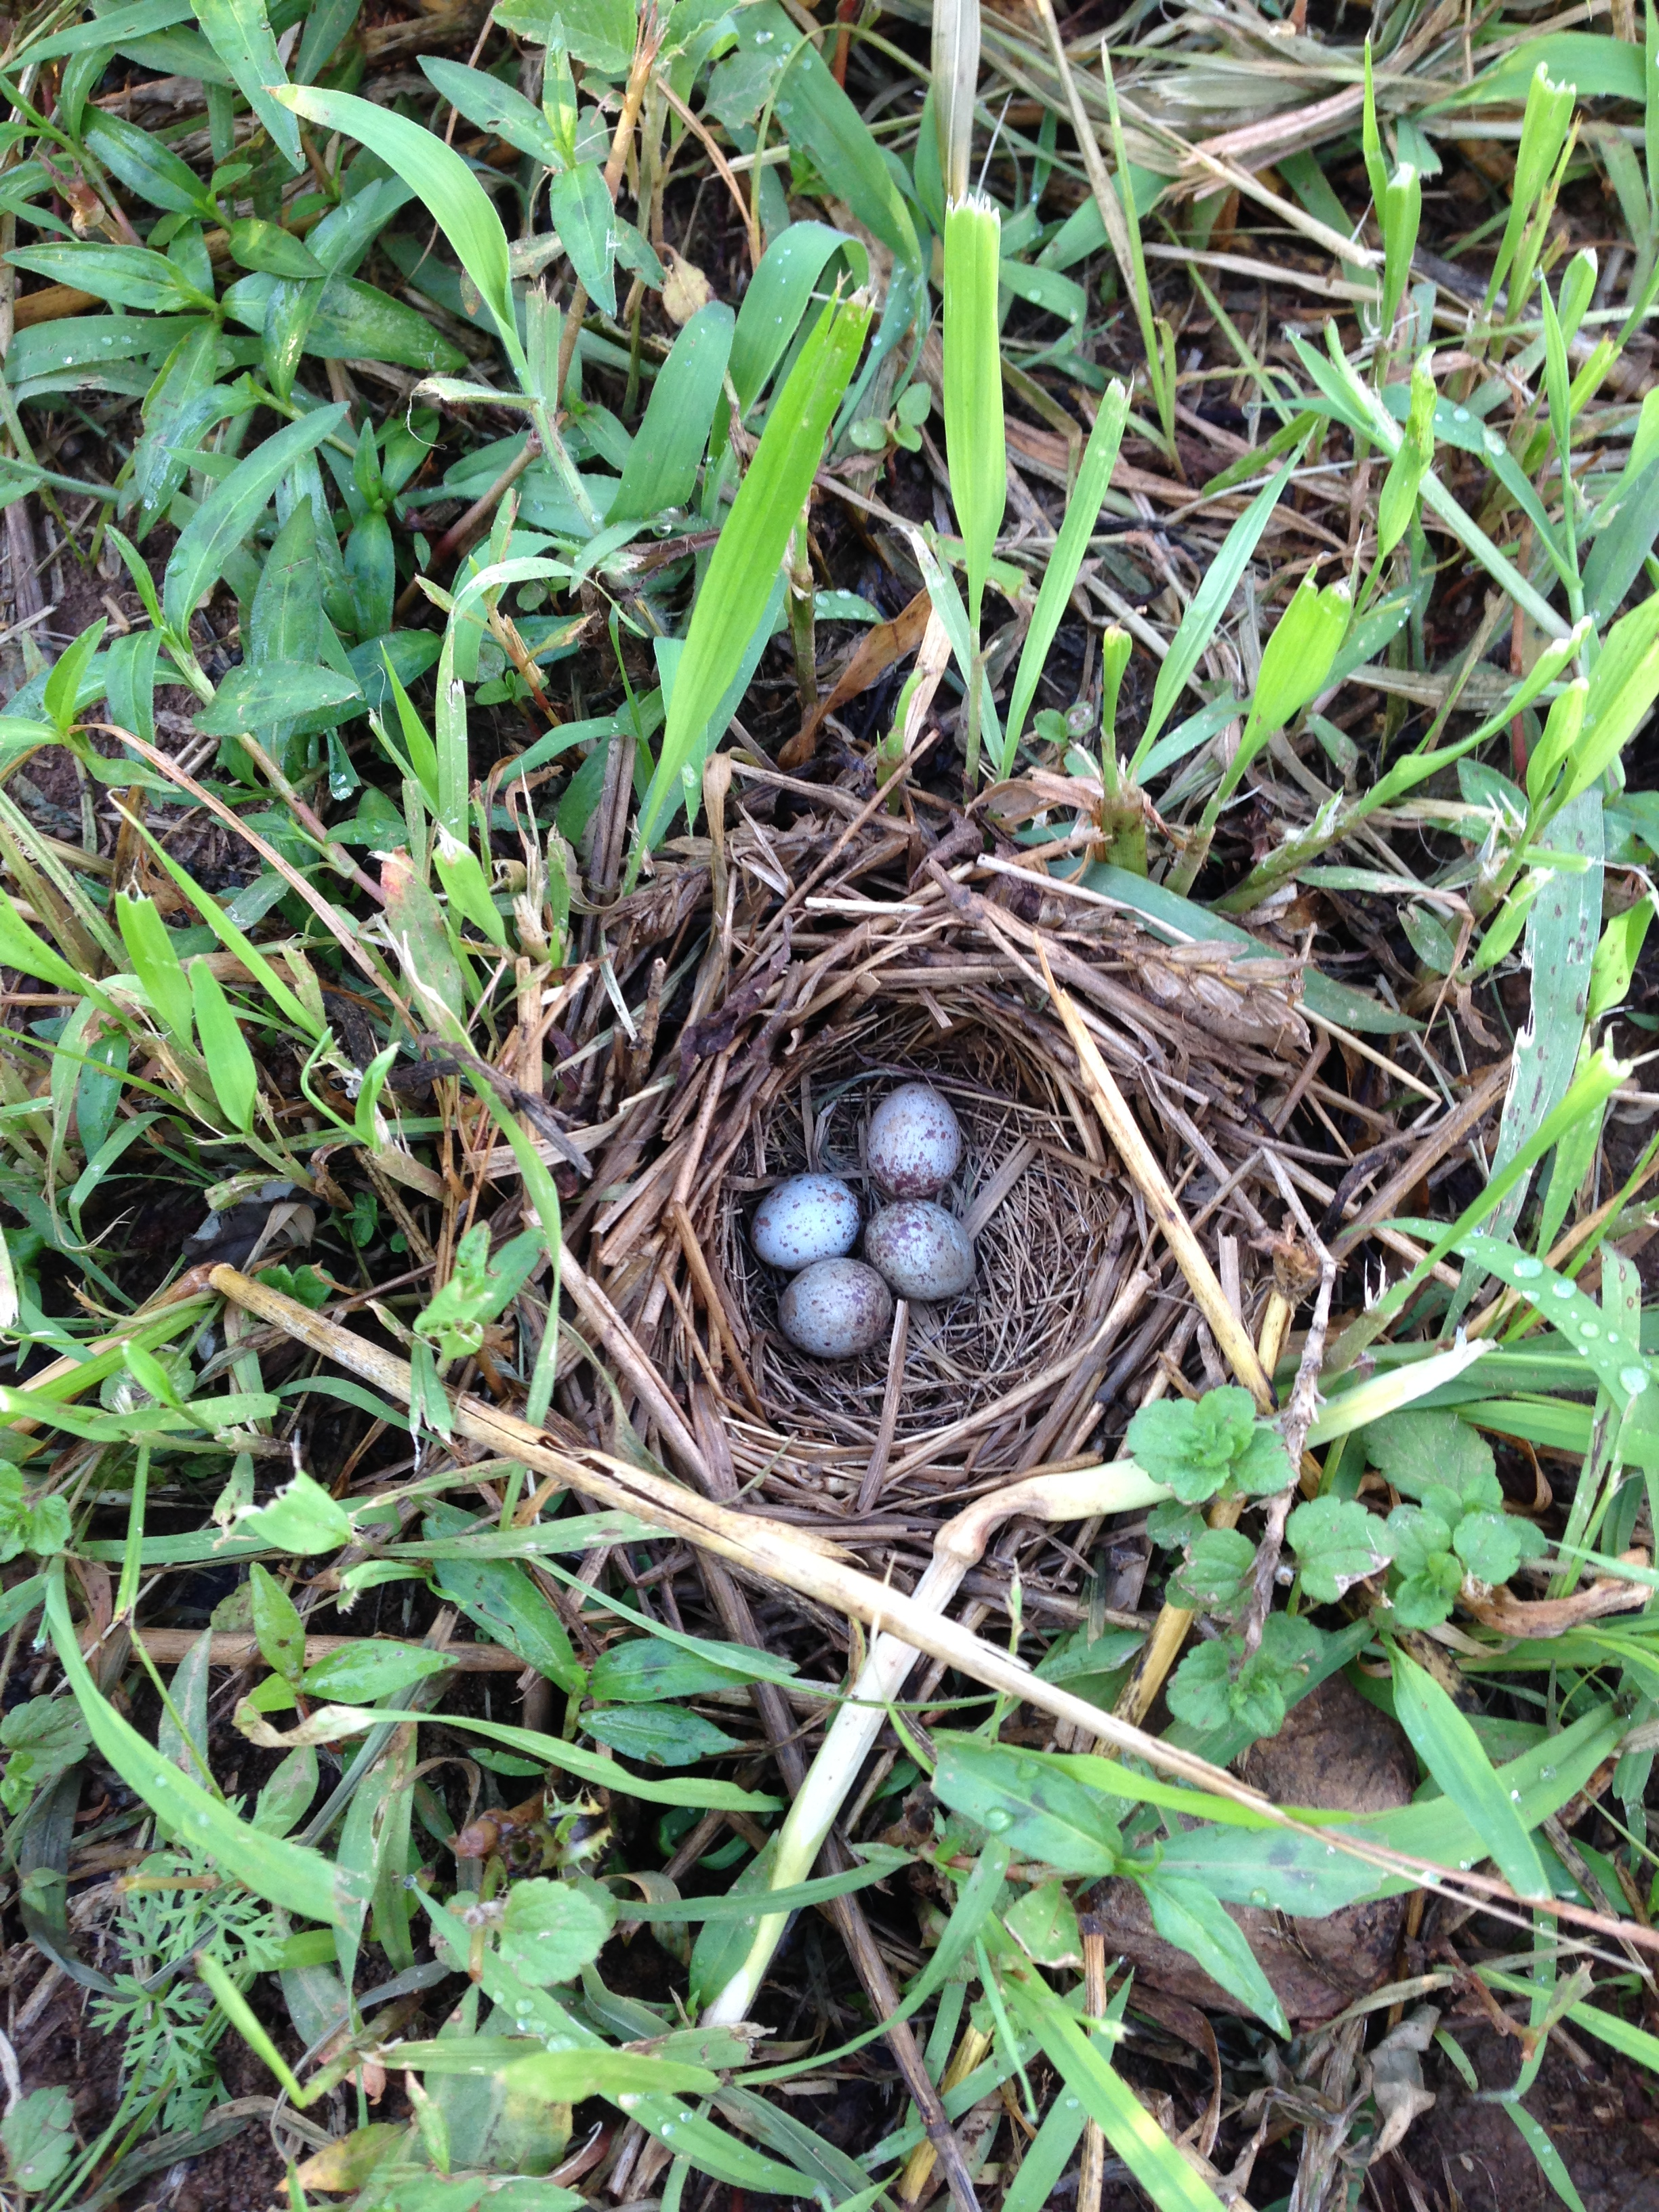 Song sparrow nest in the garlic field of Rushton during the spring of 2014.